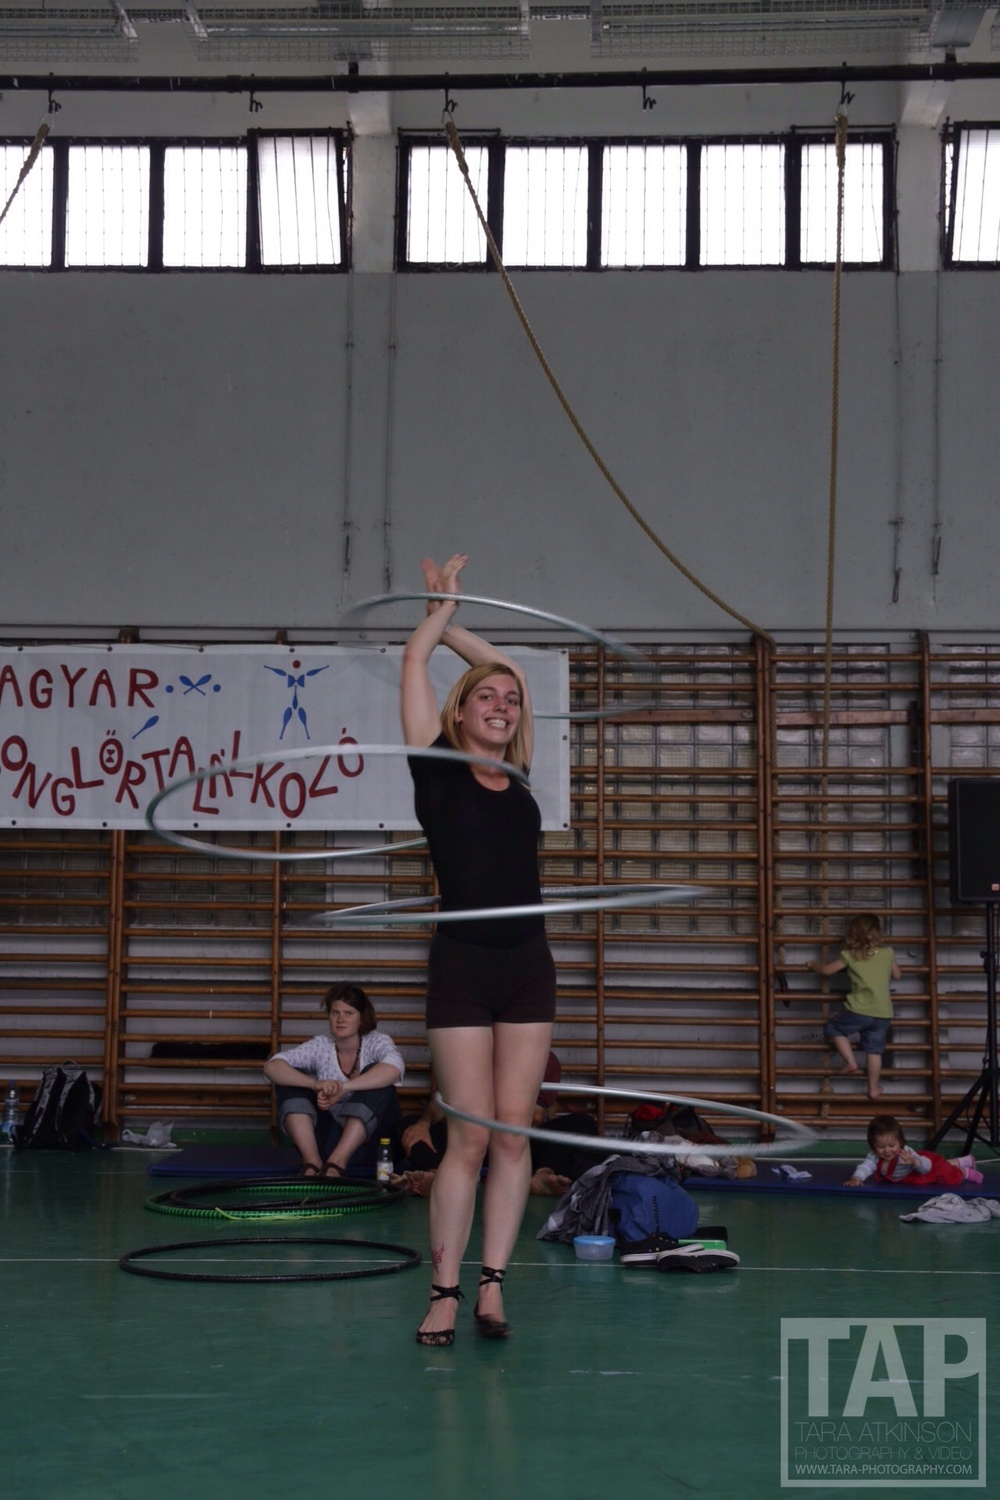 Nana was teaching the hoop workshops through the day this chick can do some wild things with the hoops